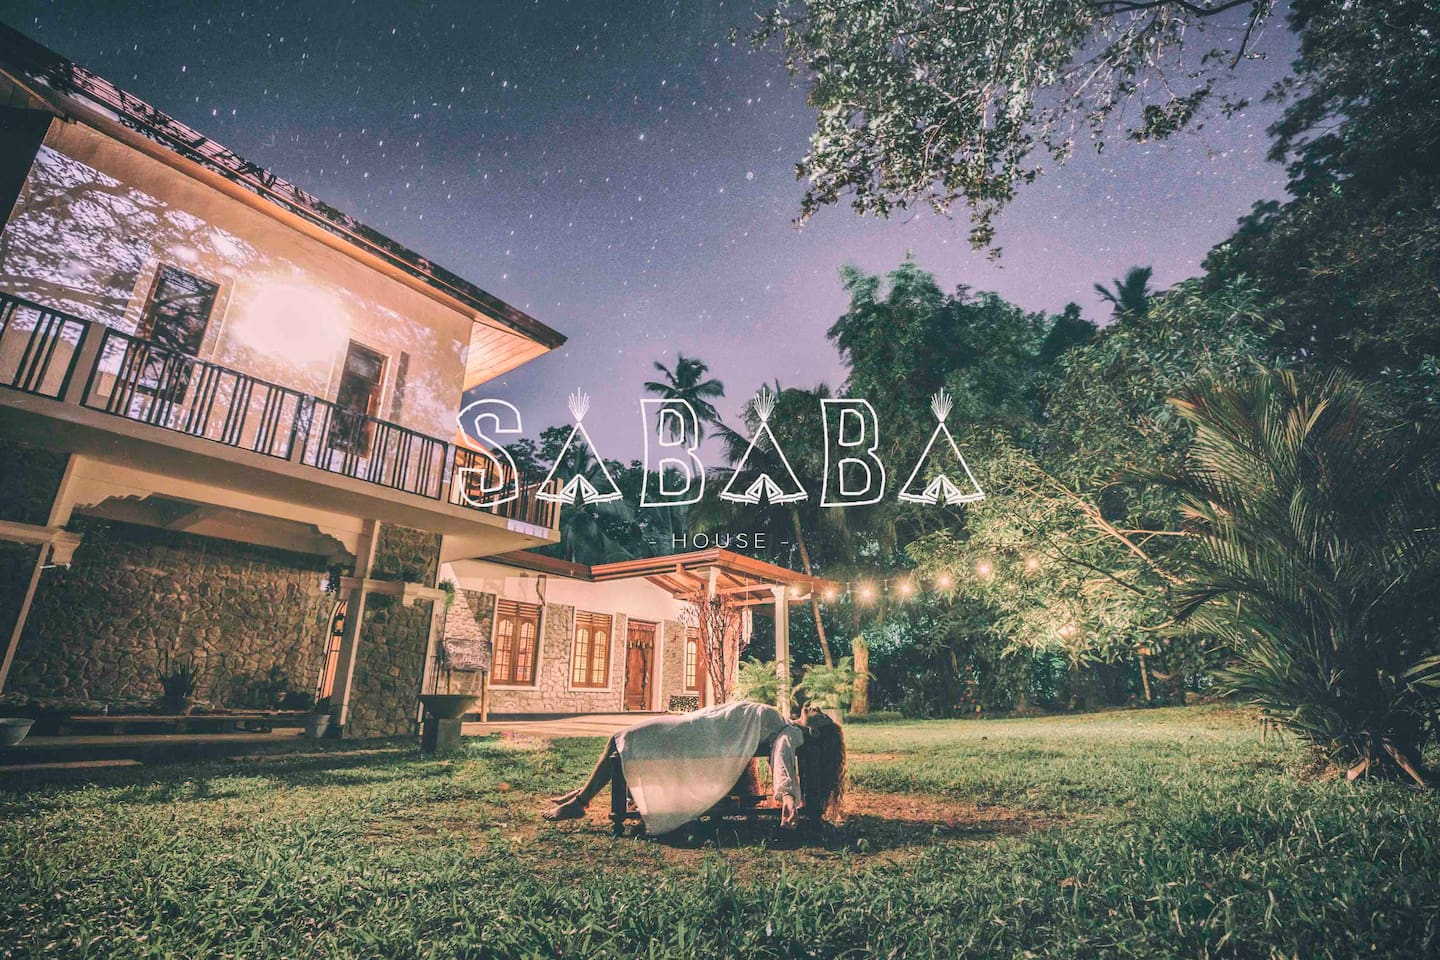 SABABA HOUSE is a garden full of LOVE & ART